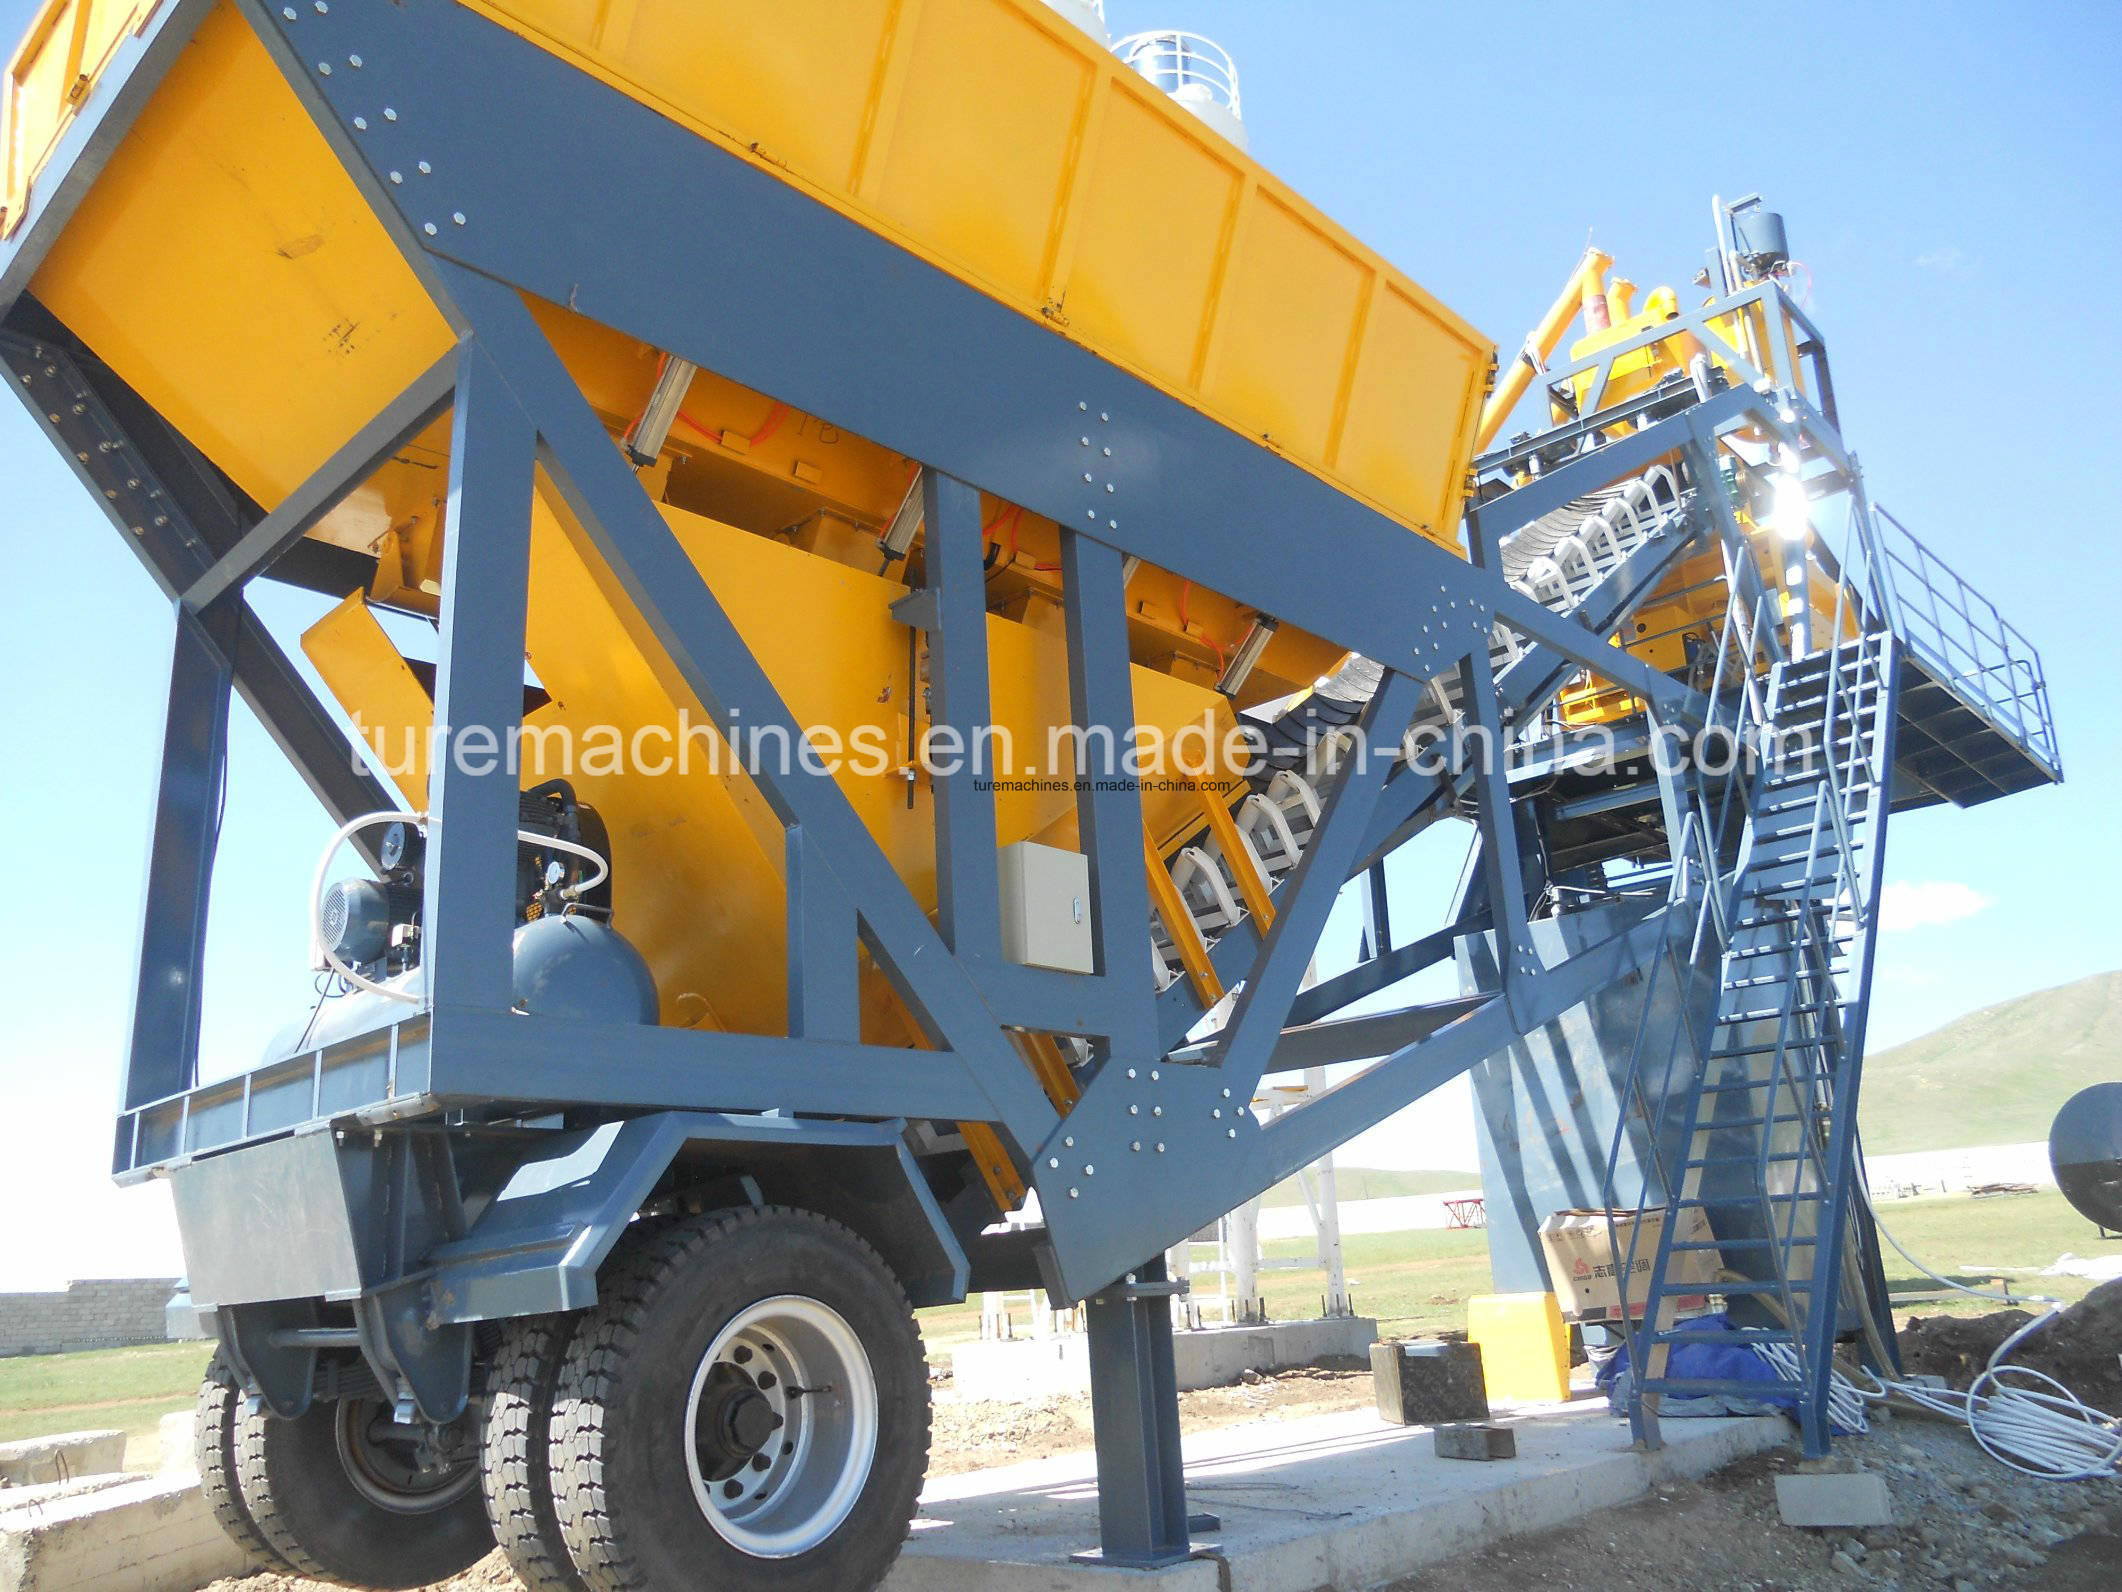 Brand New Batching Plant for Efficient Concrete Mixing Work